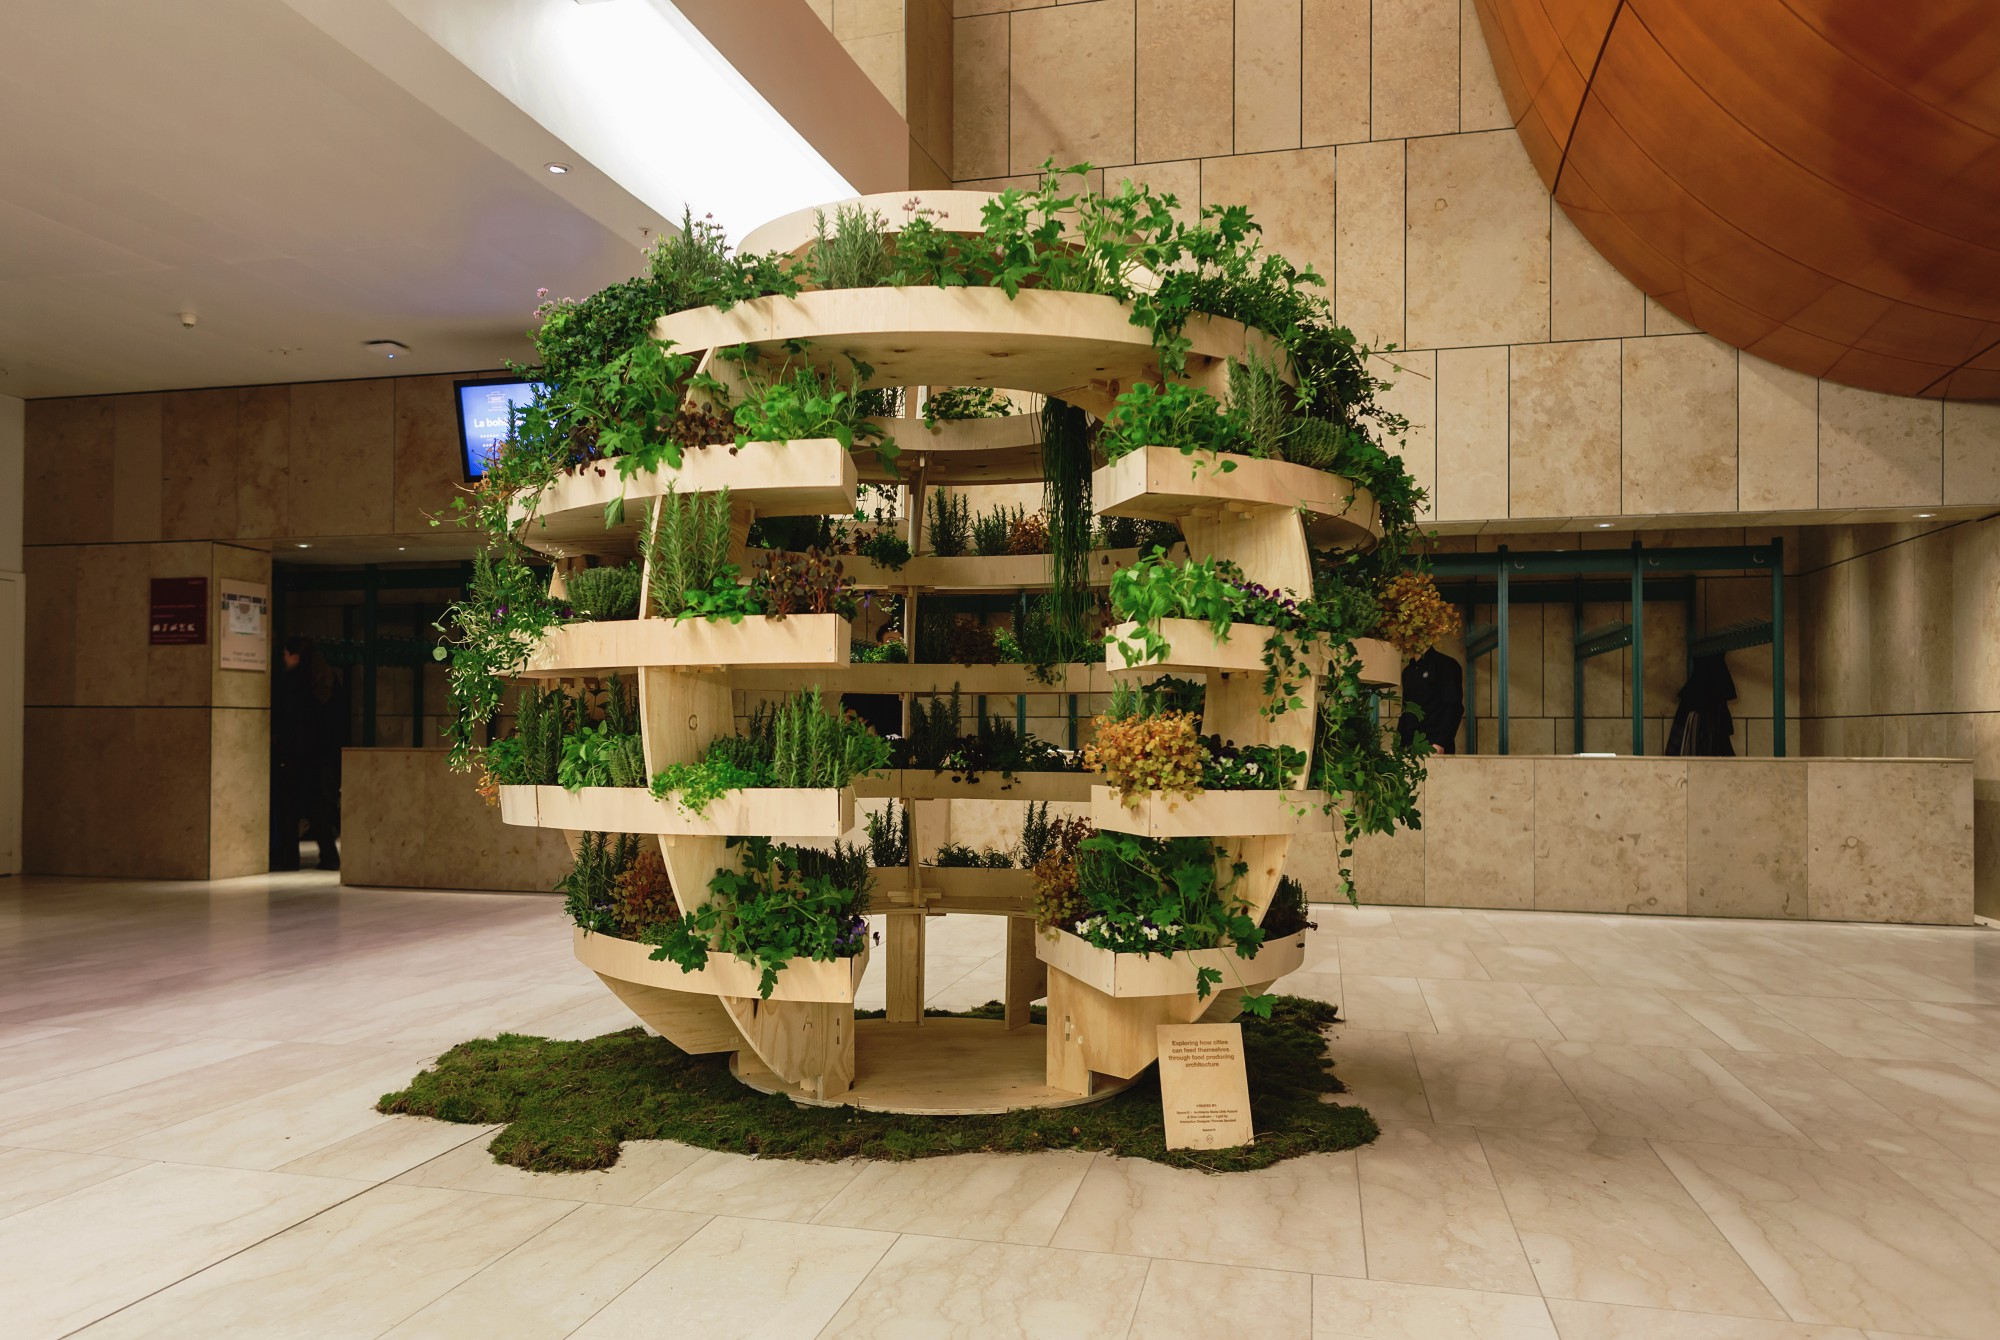 Ikea S Grownroom Means Everyone Can Grow Their Own Food